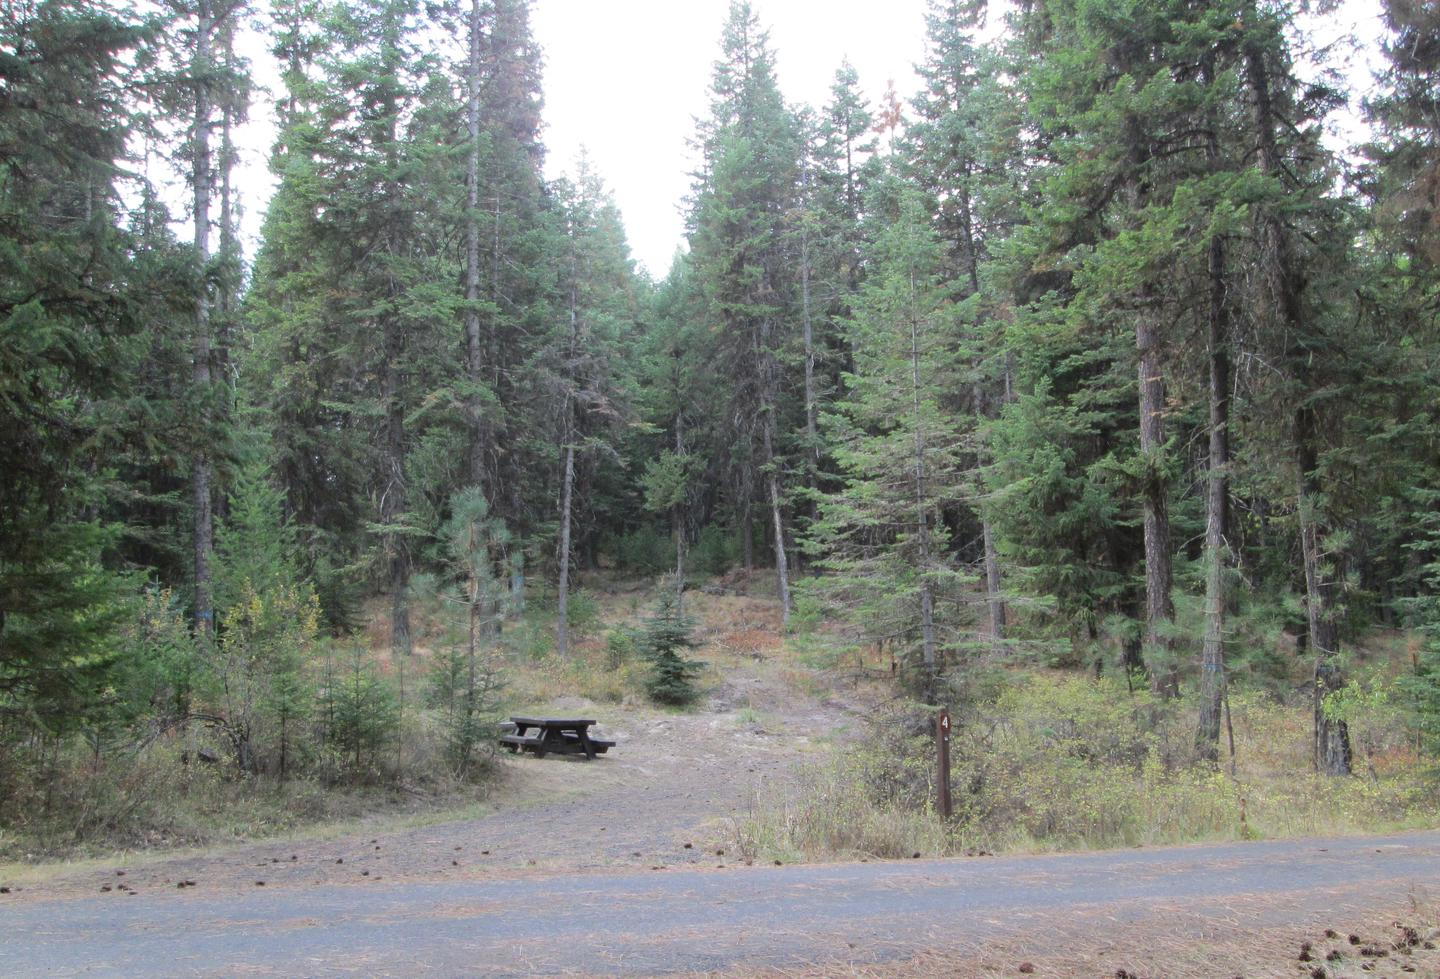 campsite parking area and entrance signBull Prairie Lake site #4